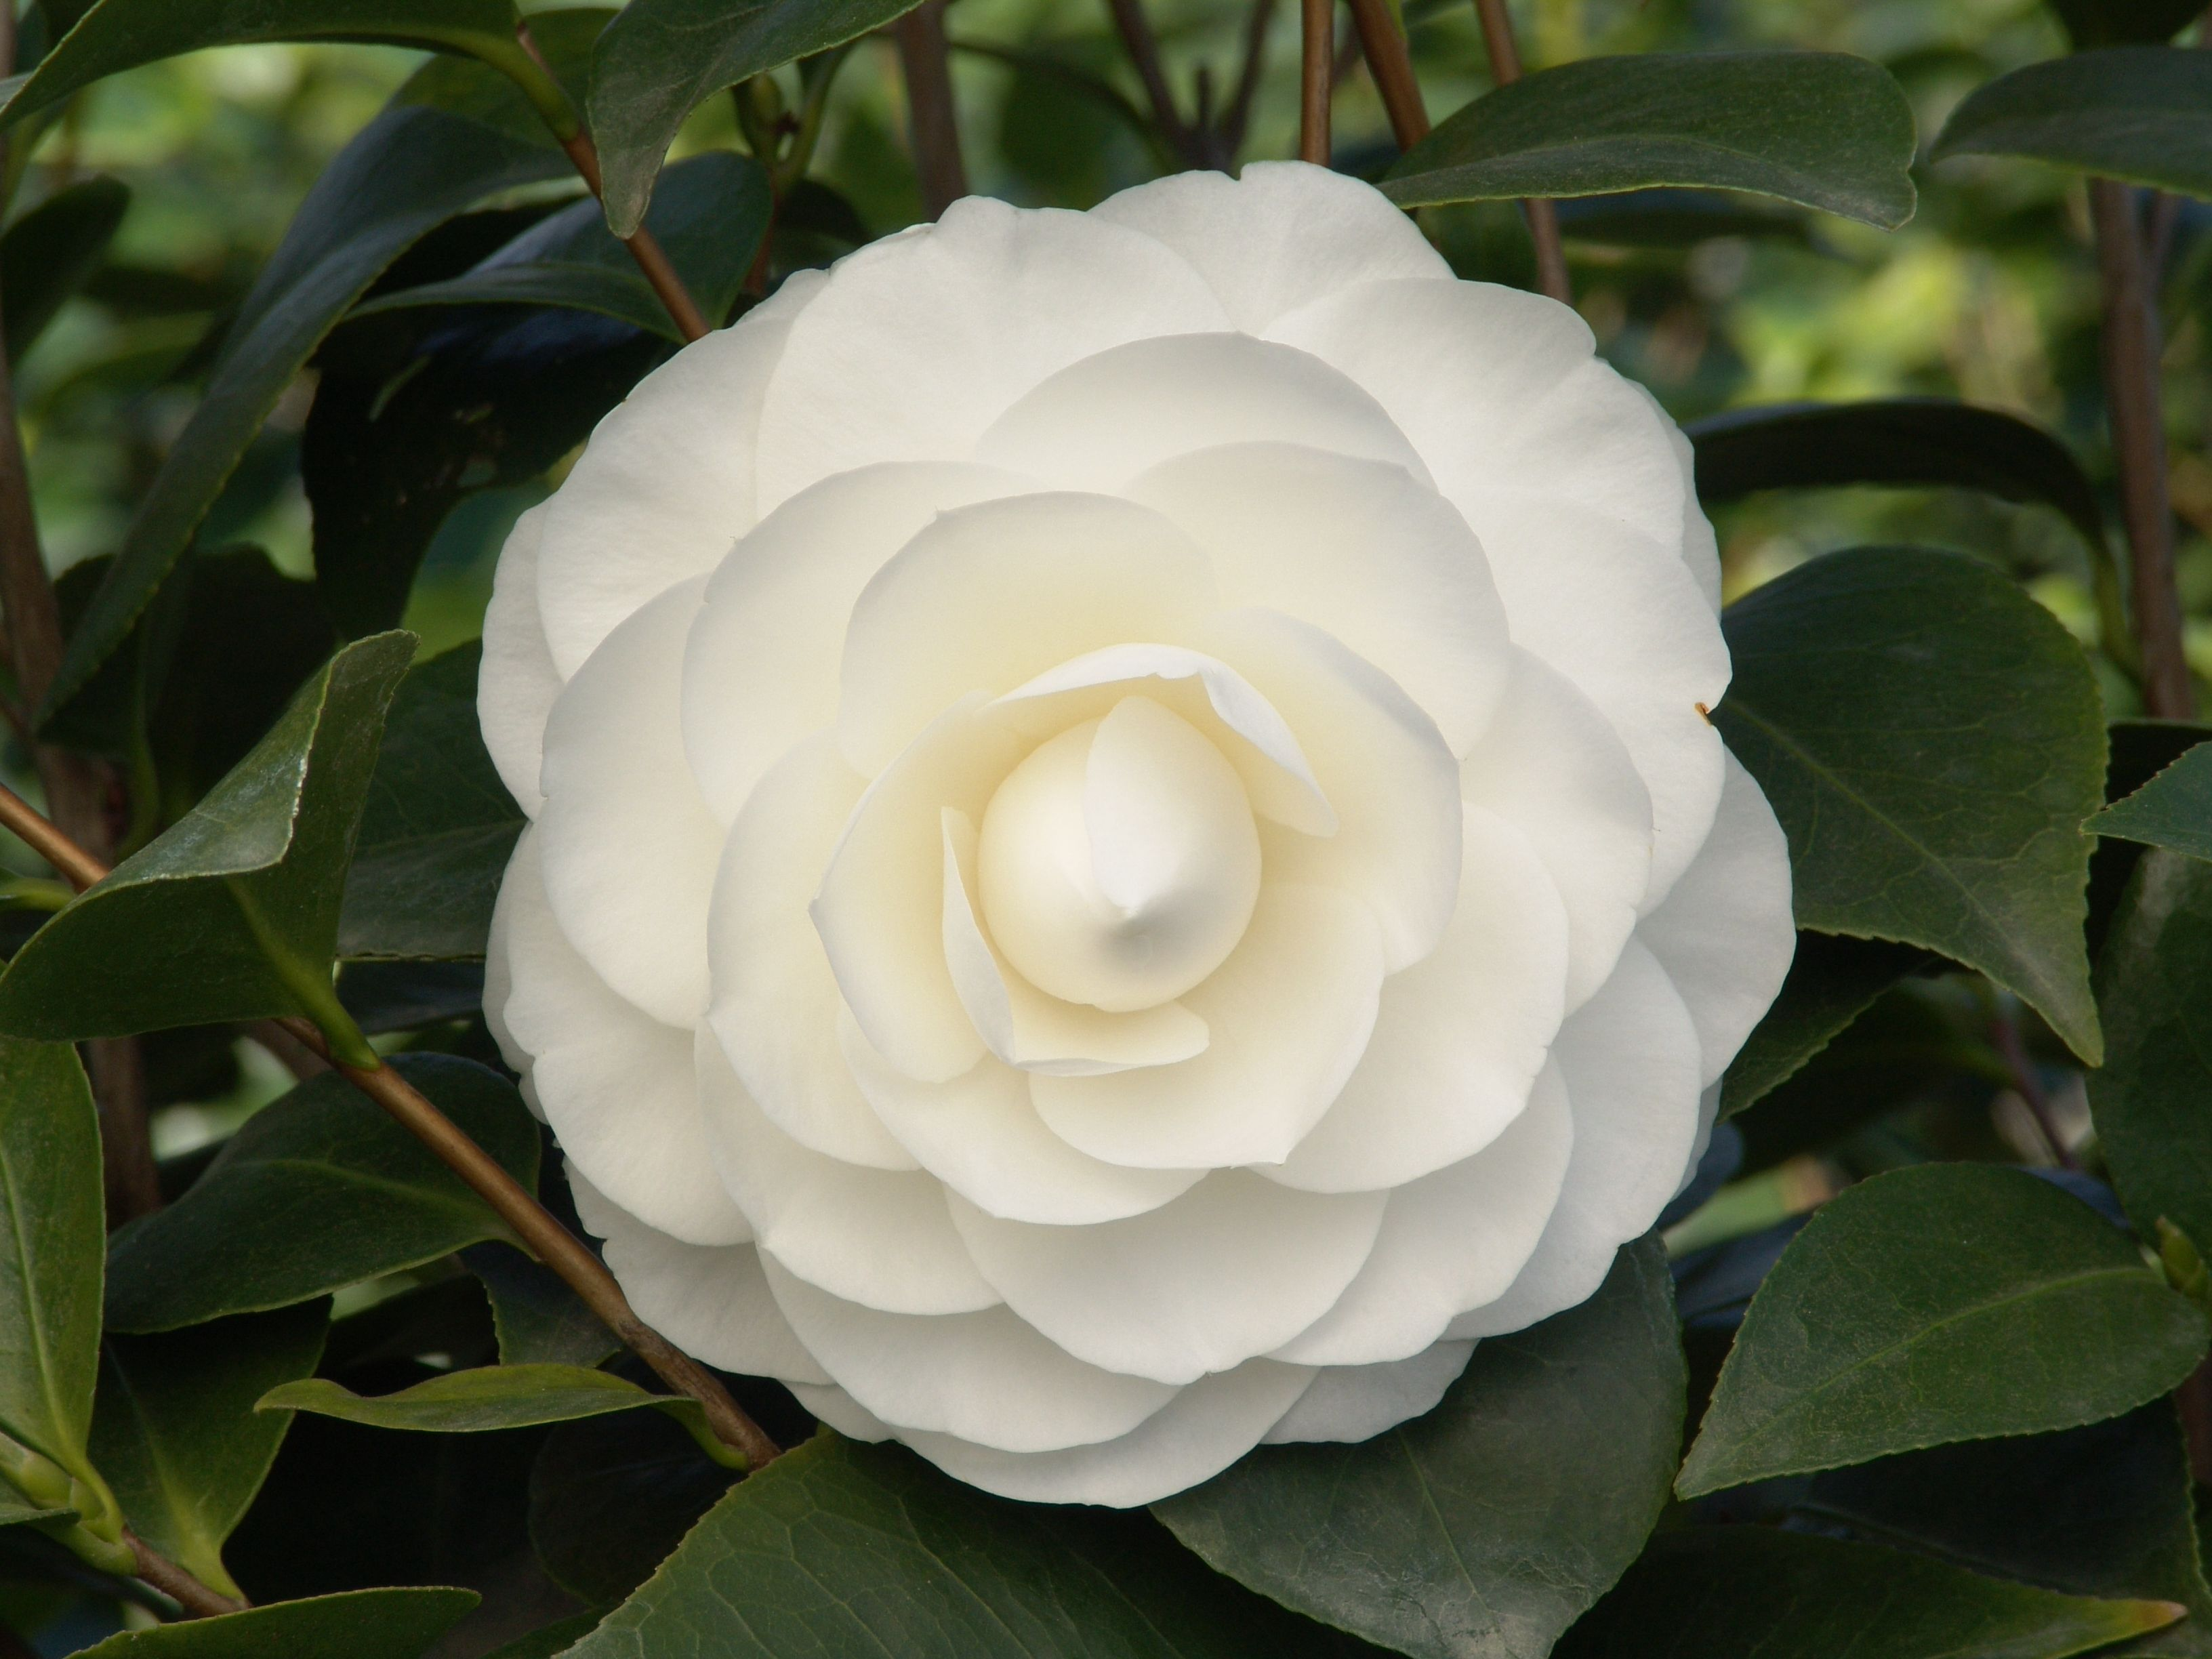 Nuccio S Gem Camellia S Sparkling White Formal Double Blooms Contrast Well With The Glossy Dark Green Foliage Filtere Perfect Plants Camellia Flower Plants